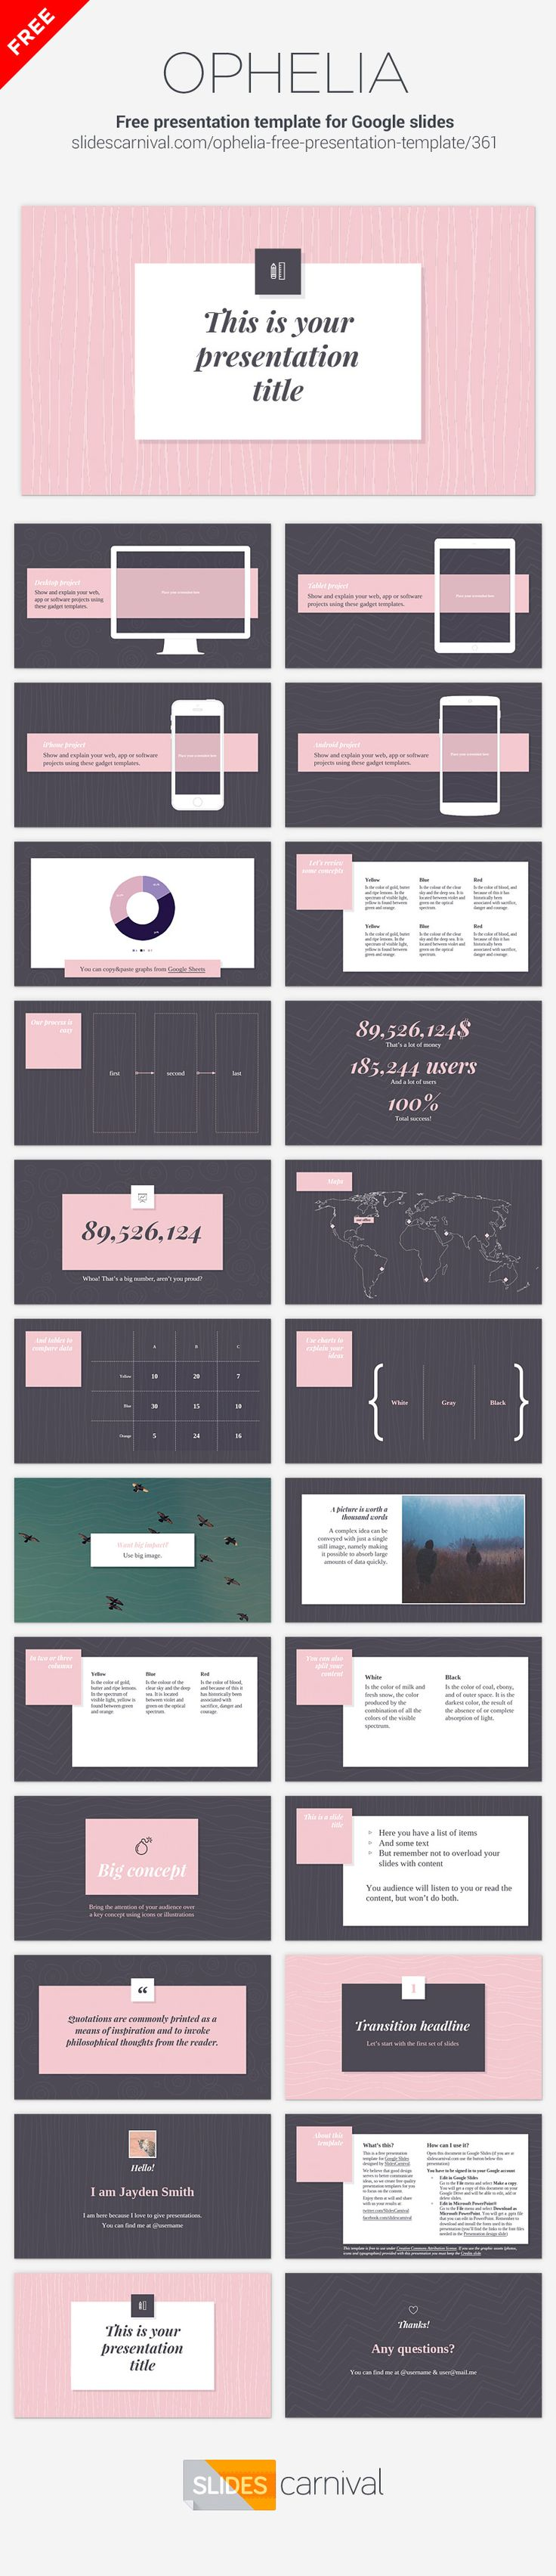 If you need an elegant and stylish design you should choose this free presentation template. With pink as main accent color this design adds a feminine touch to your ideas, but you can easily change the color if you need another mood. This template works great for topics related to fashion or decoration.